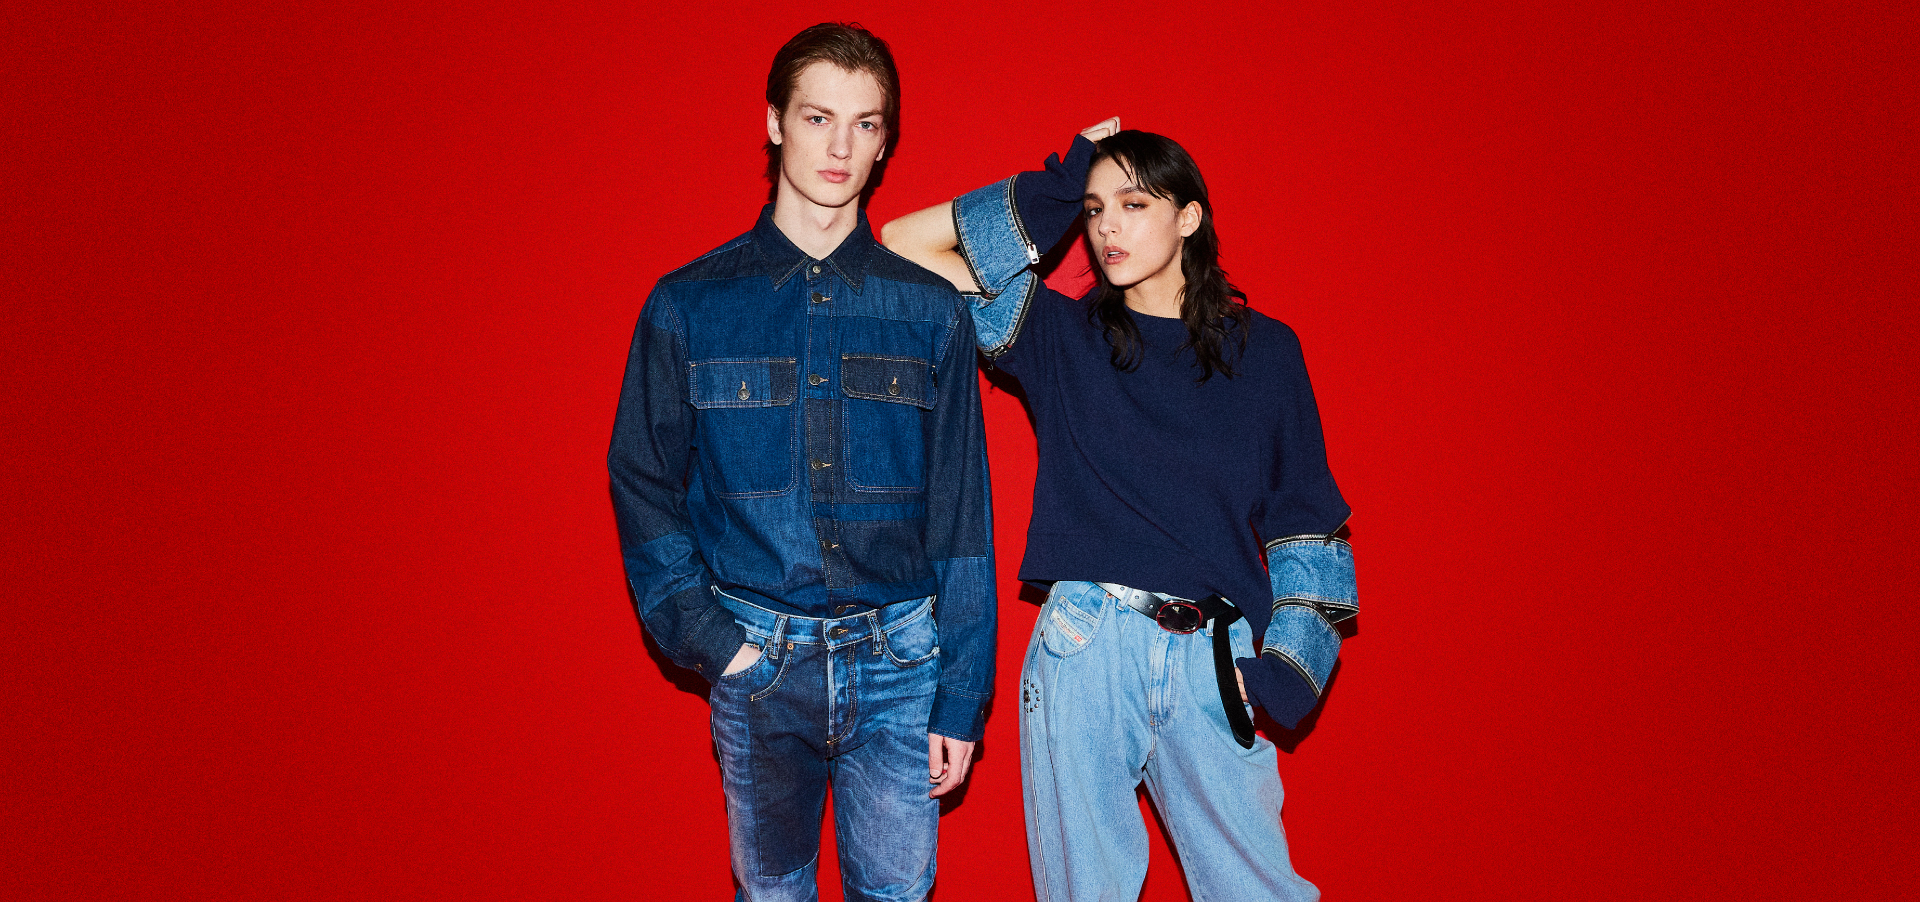 SS21 DENIM COLLECTION